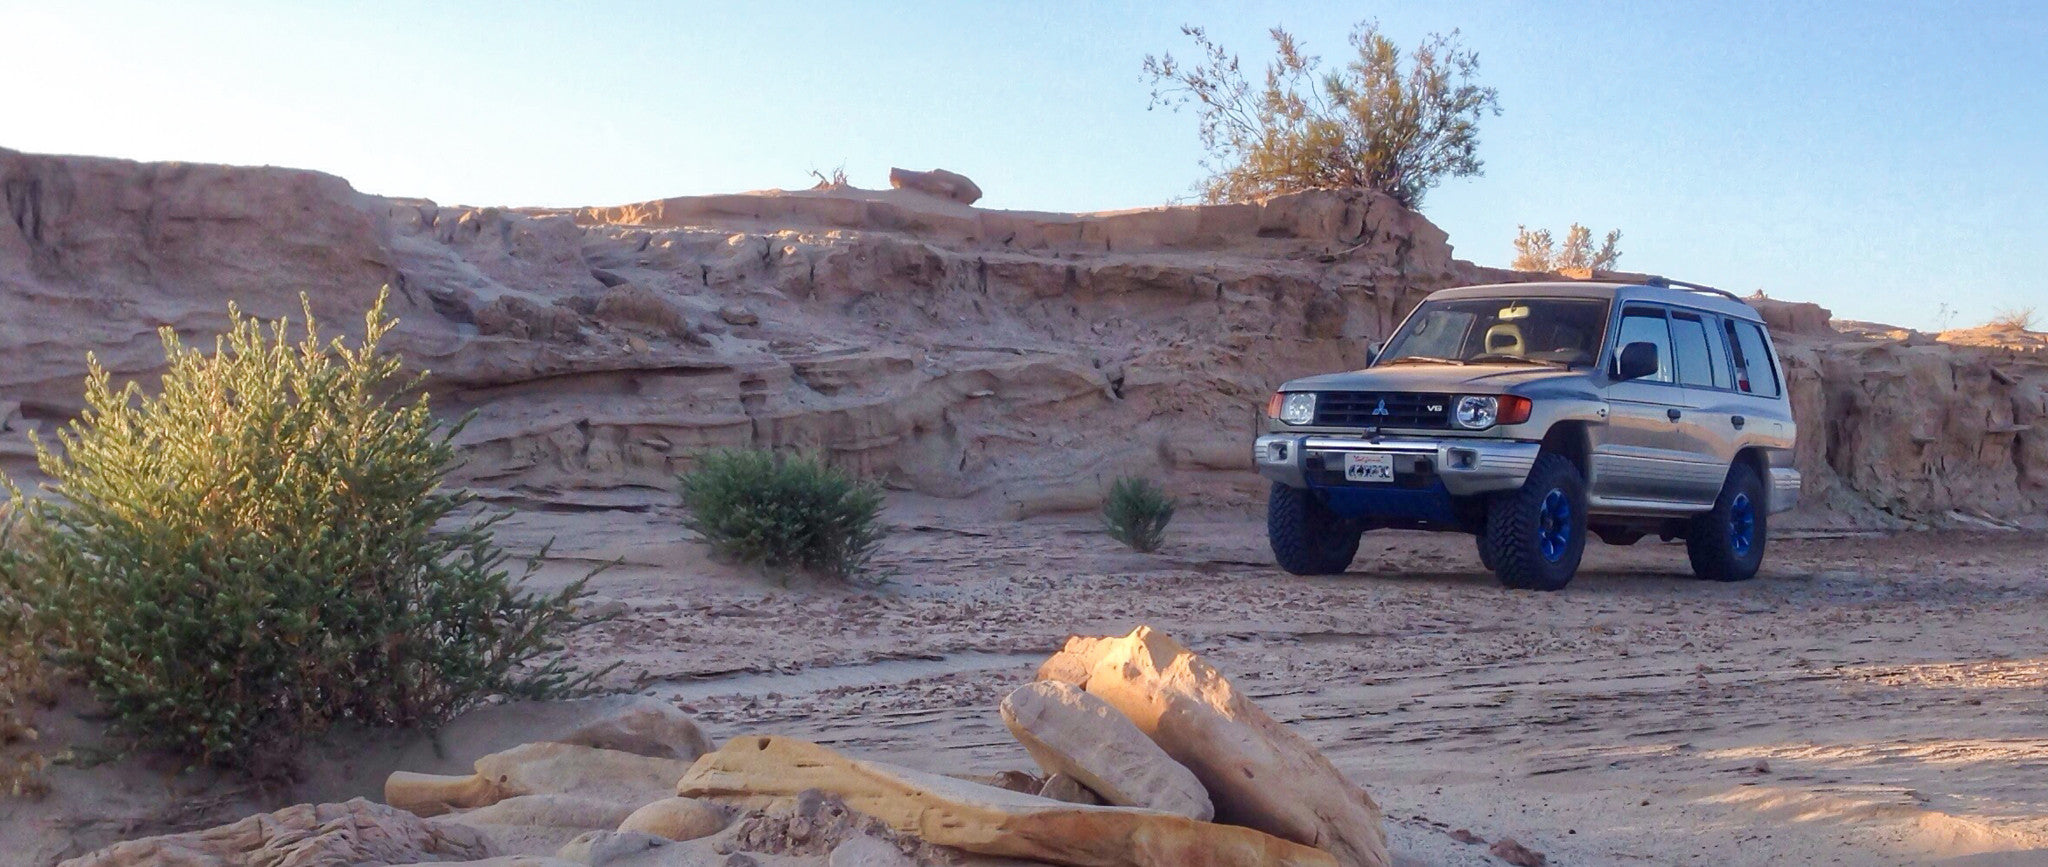 Anza Borrego off road camping